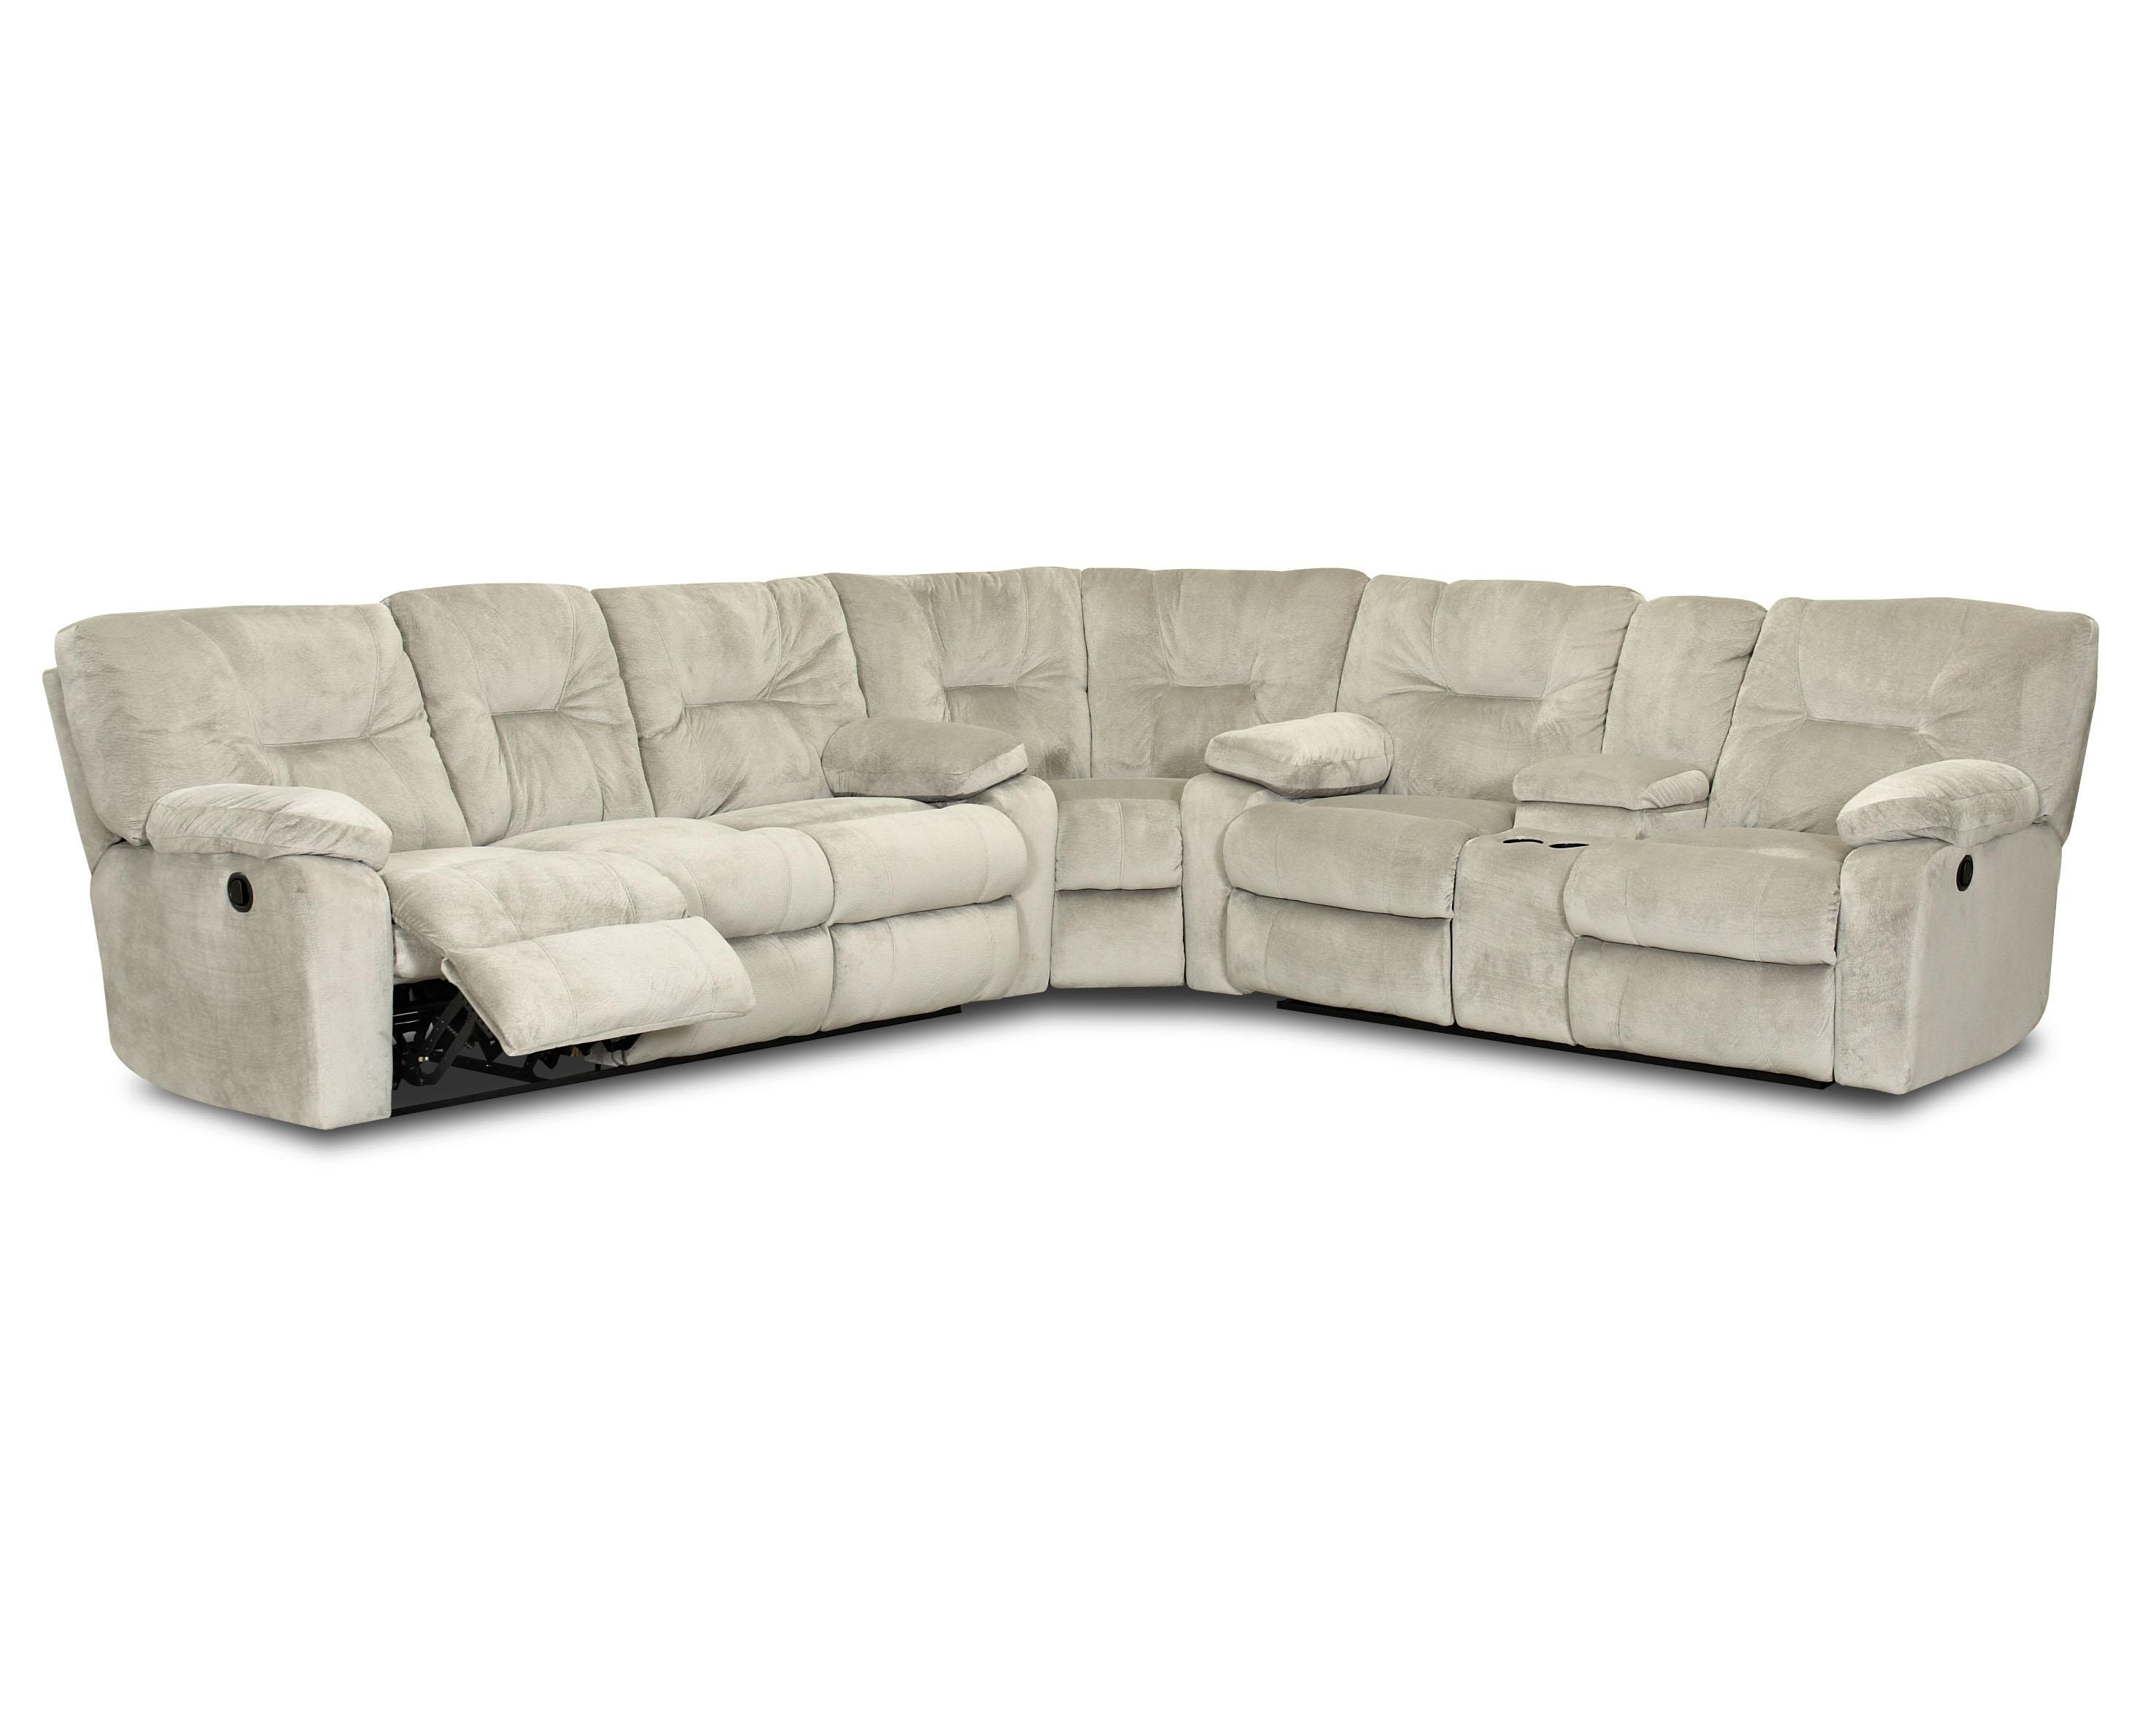 Home Furnishings Toronto Klaussner Toronto Casual Power Reclining Sectional With Pillow Top